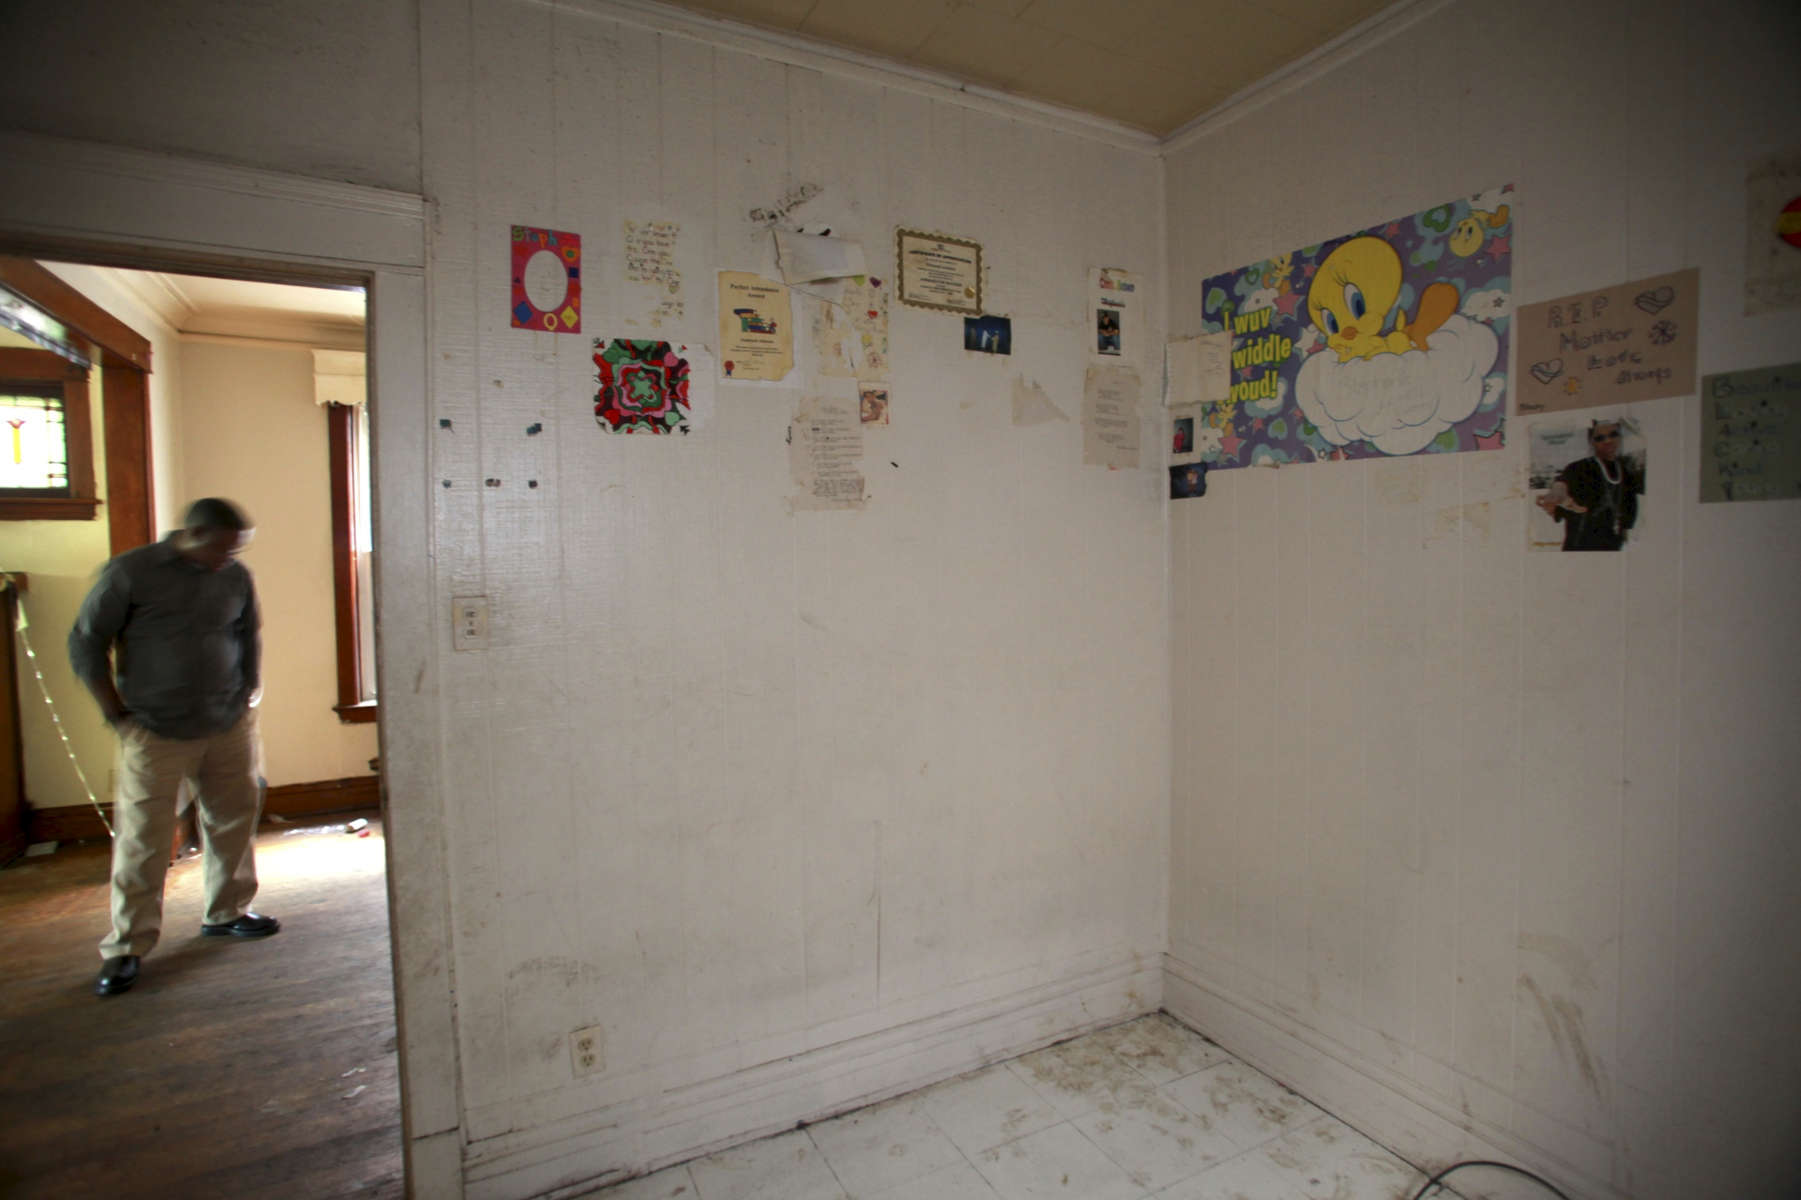 School awards, cards and photos still hang in a bedroom in an apartment on Chicago's west side. The foreclosed building is property of US Bank, which inherited it and similar properties from Park National Bank earlier this year.